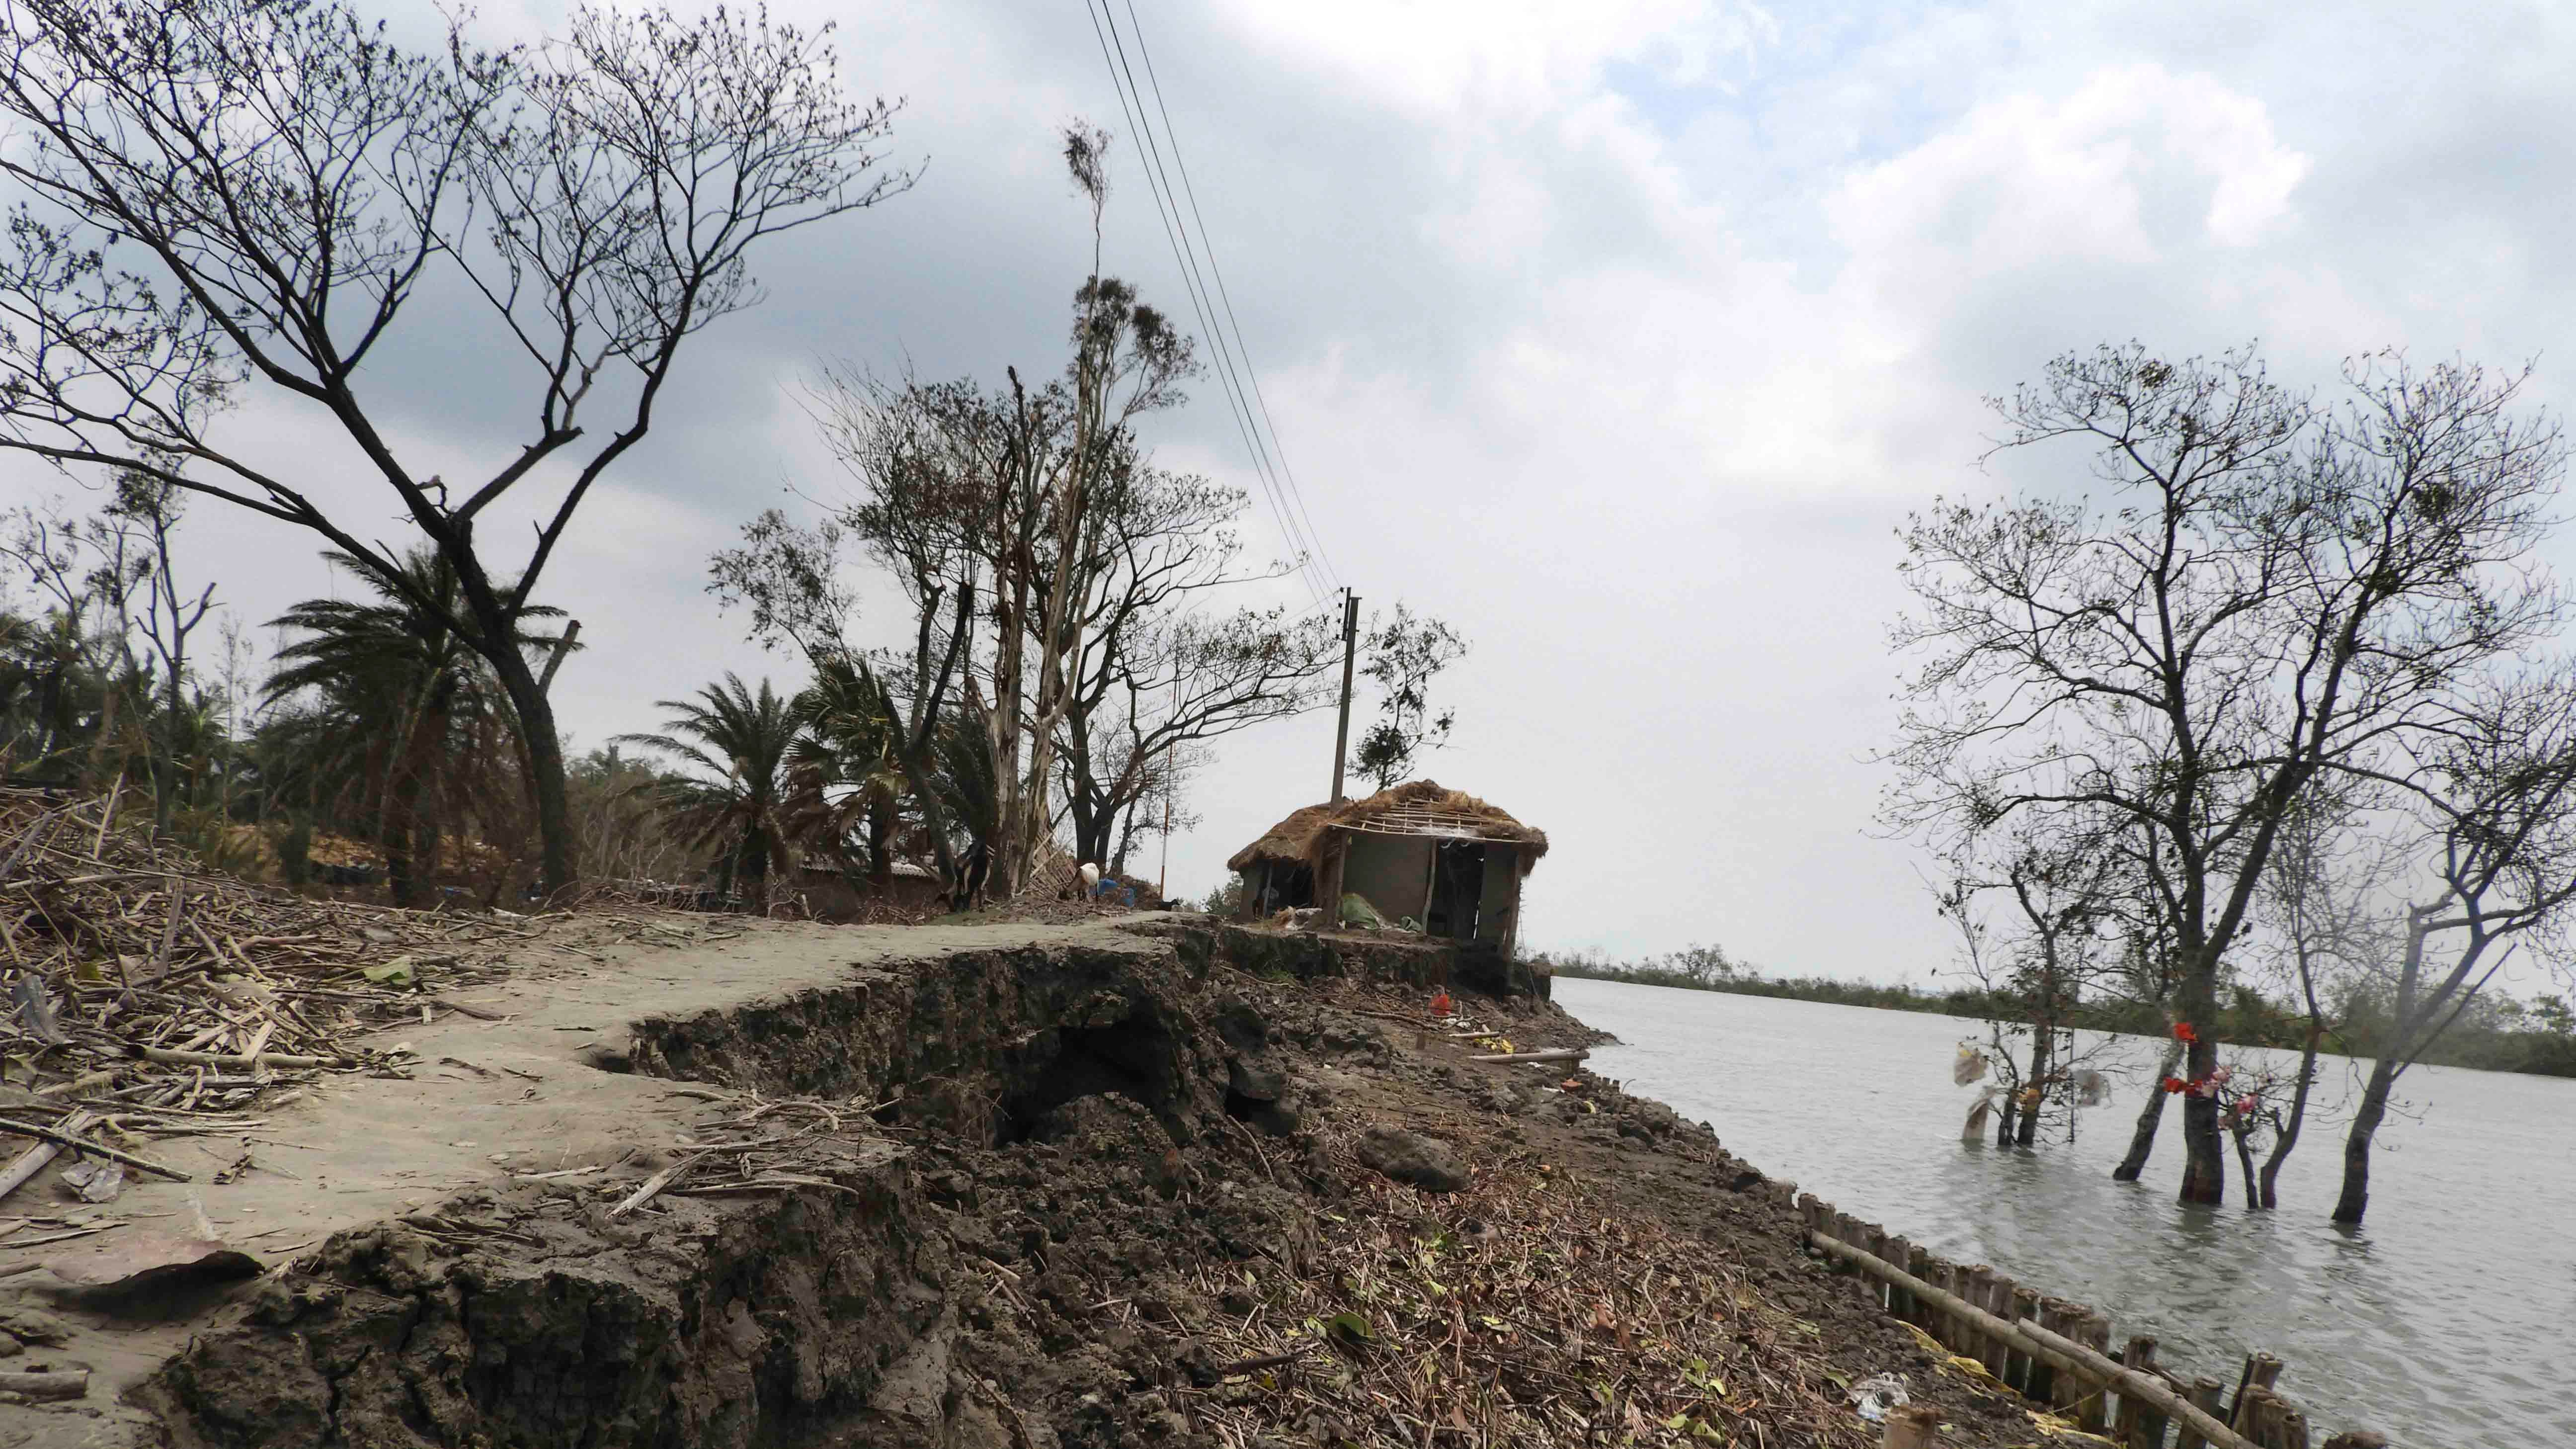 Tropical Cyclone Amphan Leaves Behind Ecological, Humanitarian Disaster in Sundarban Mangroves | The Weather Channel